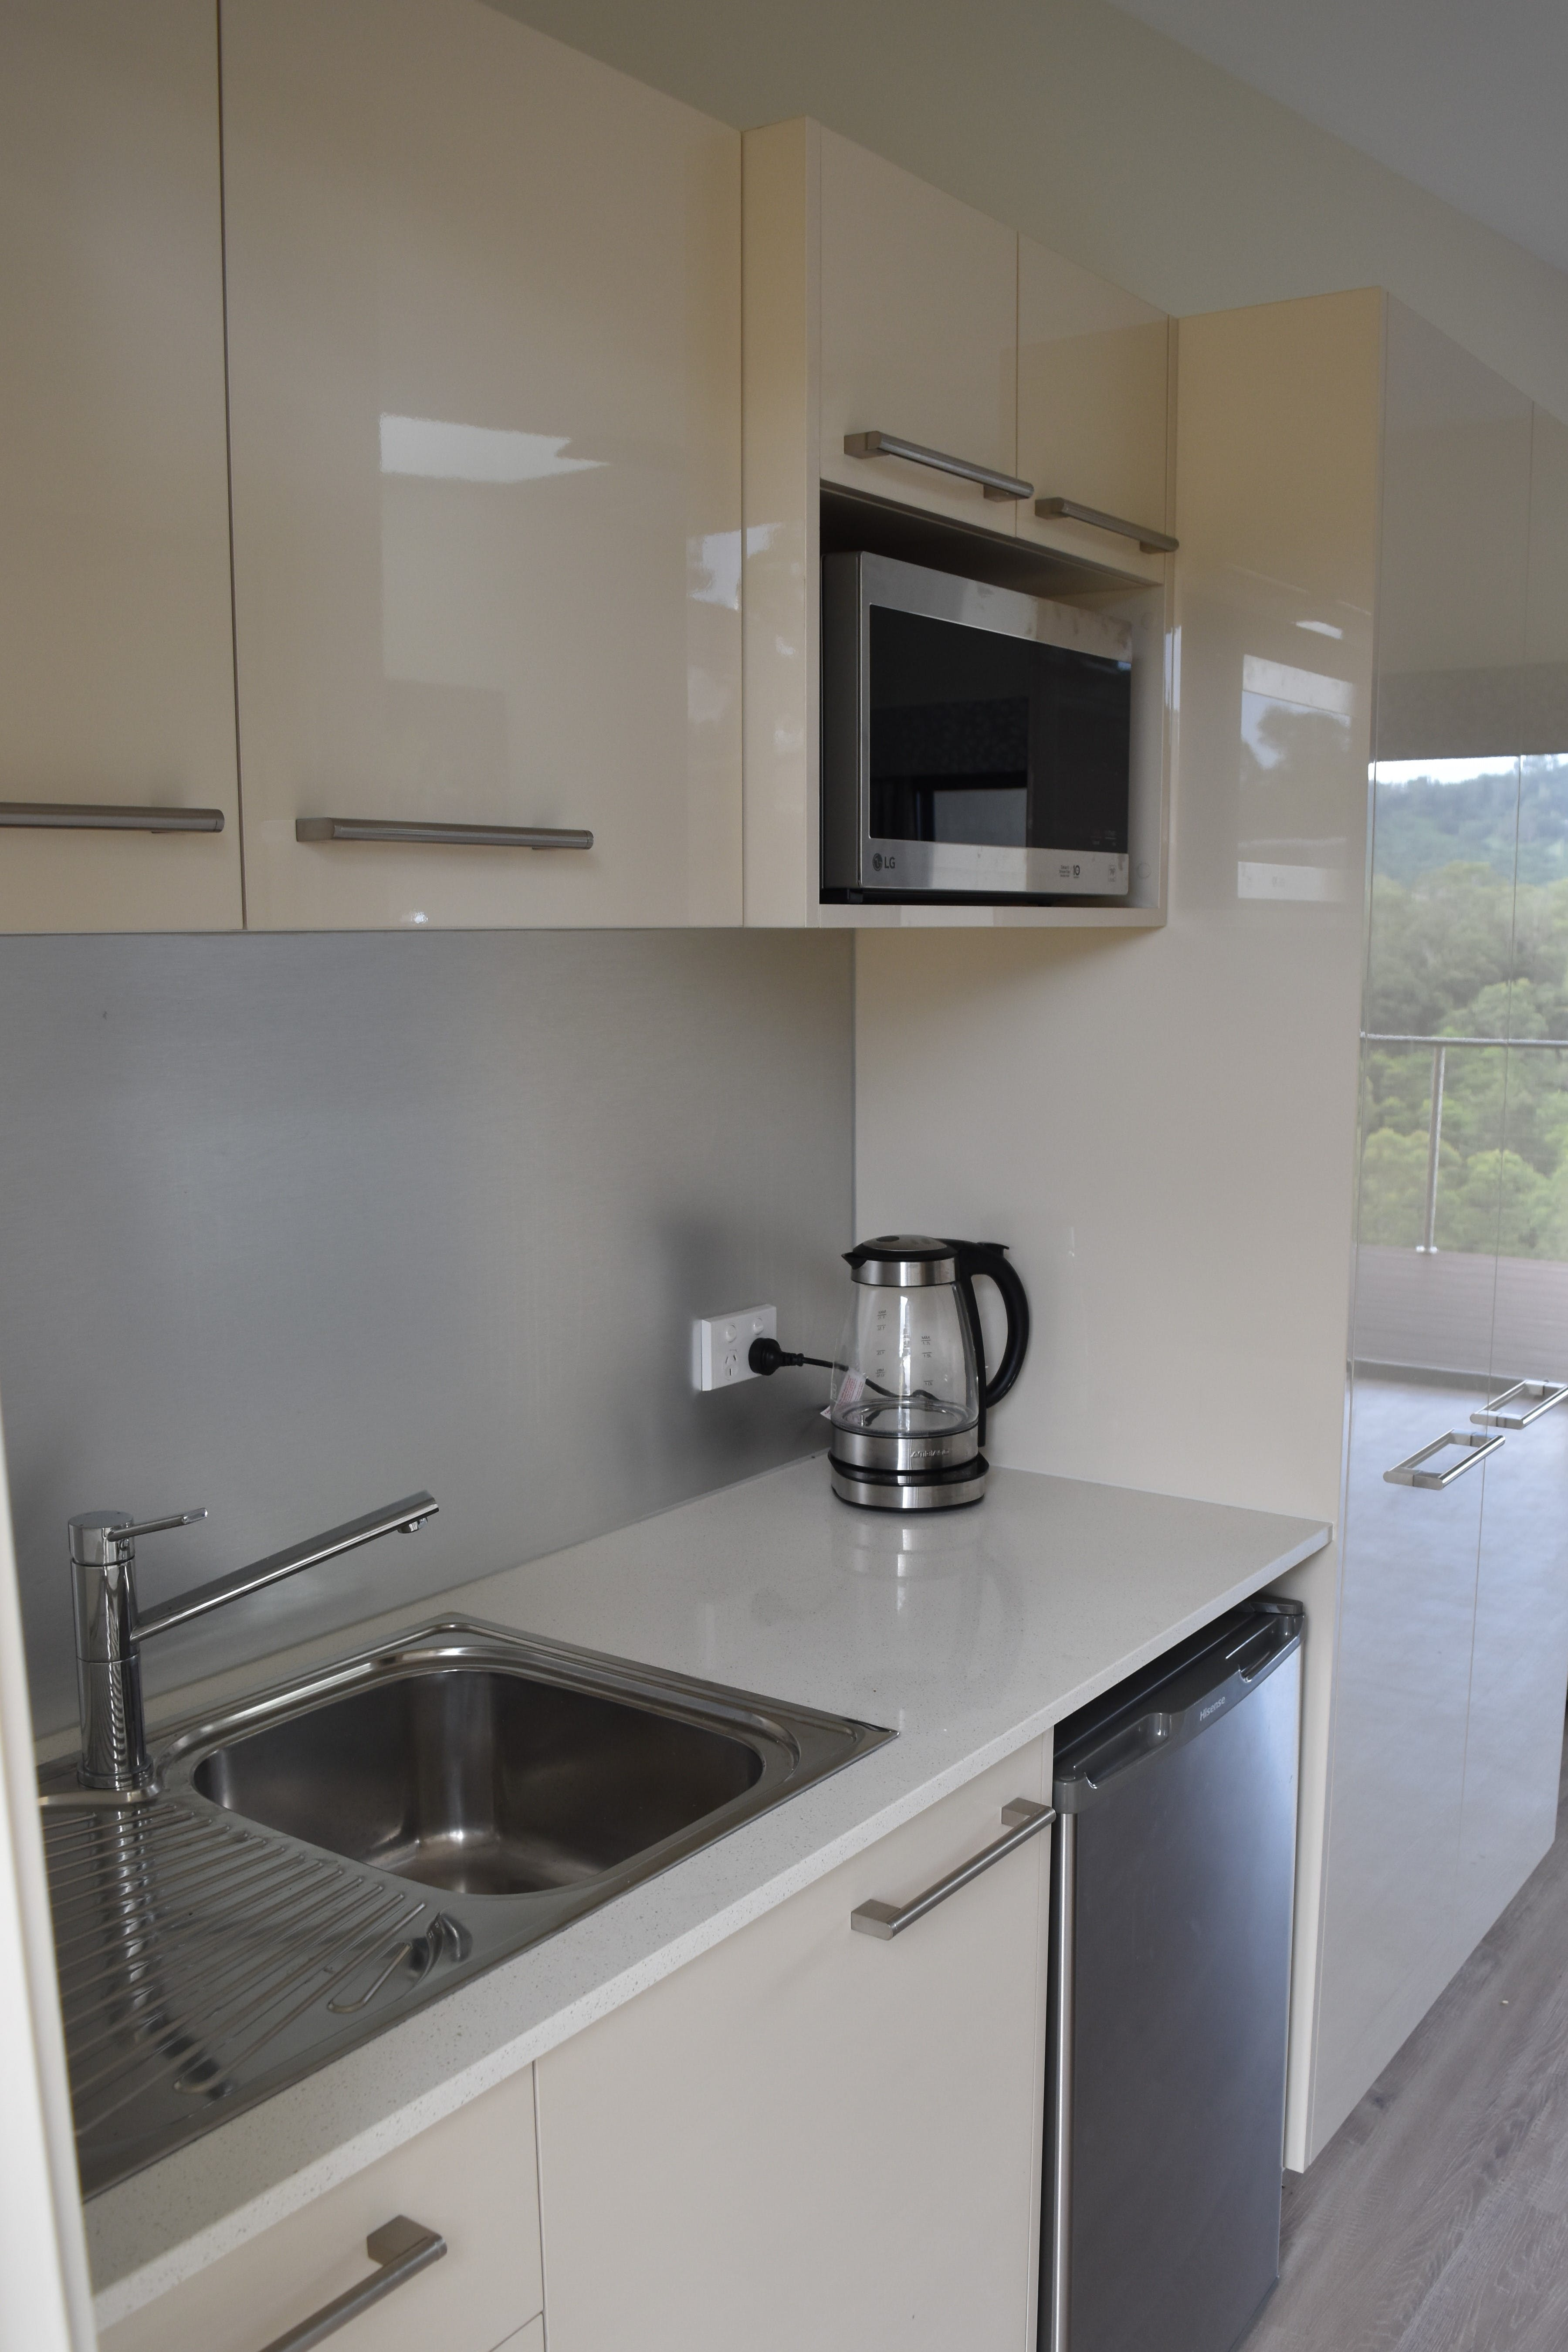 Kitchenette with bar fridge, microwave, kettle & toaster. Other electrical appliances are available for your use.